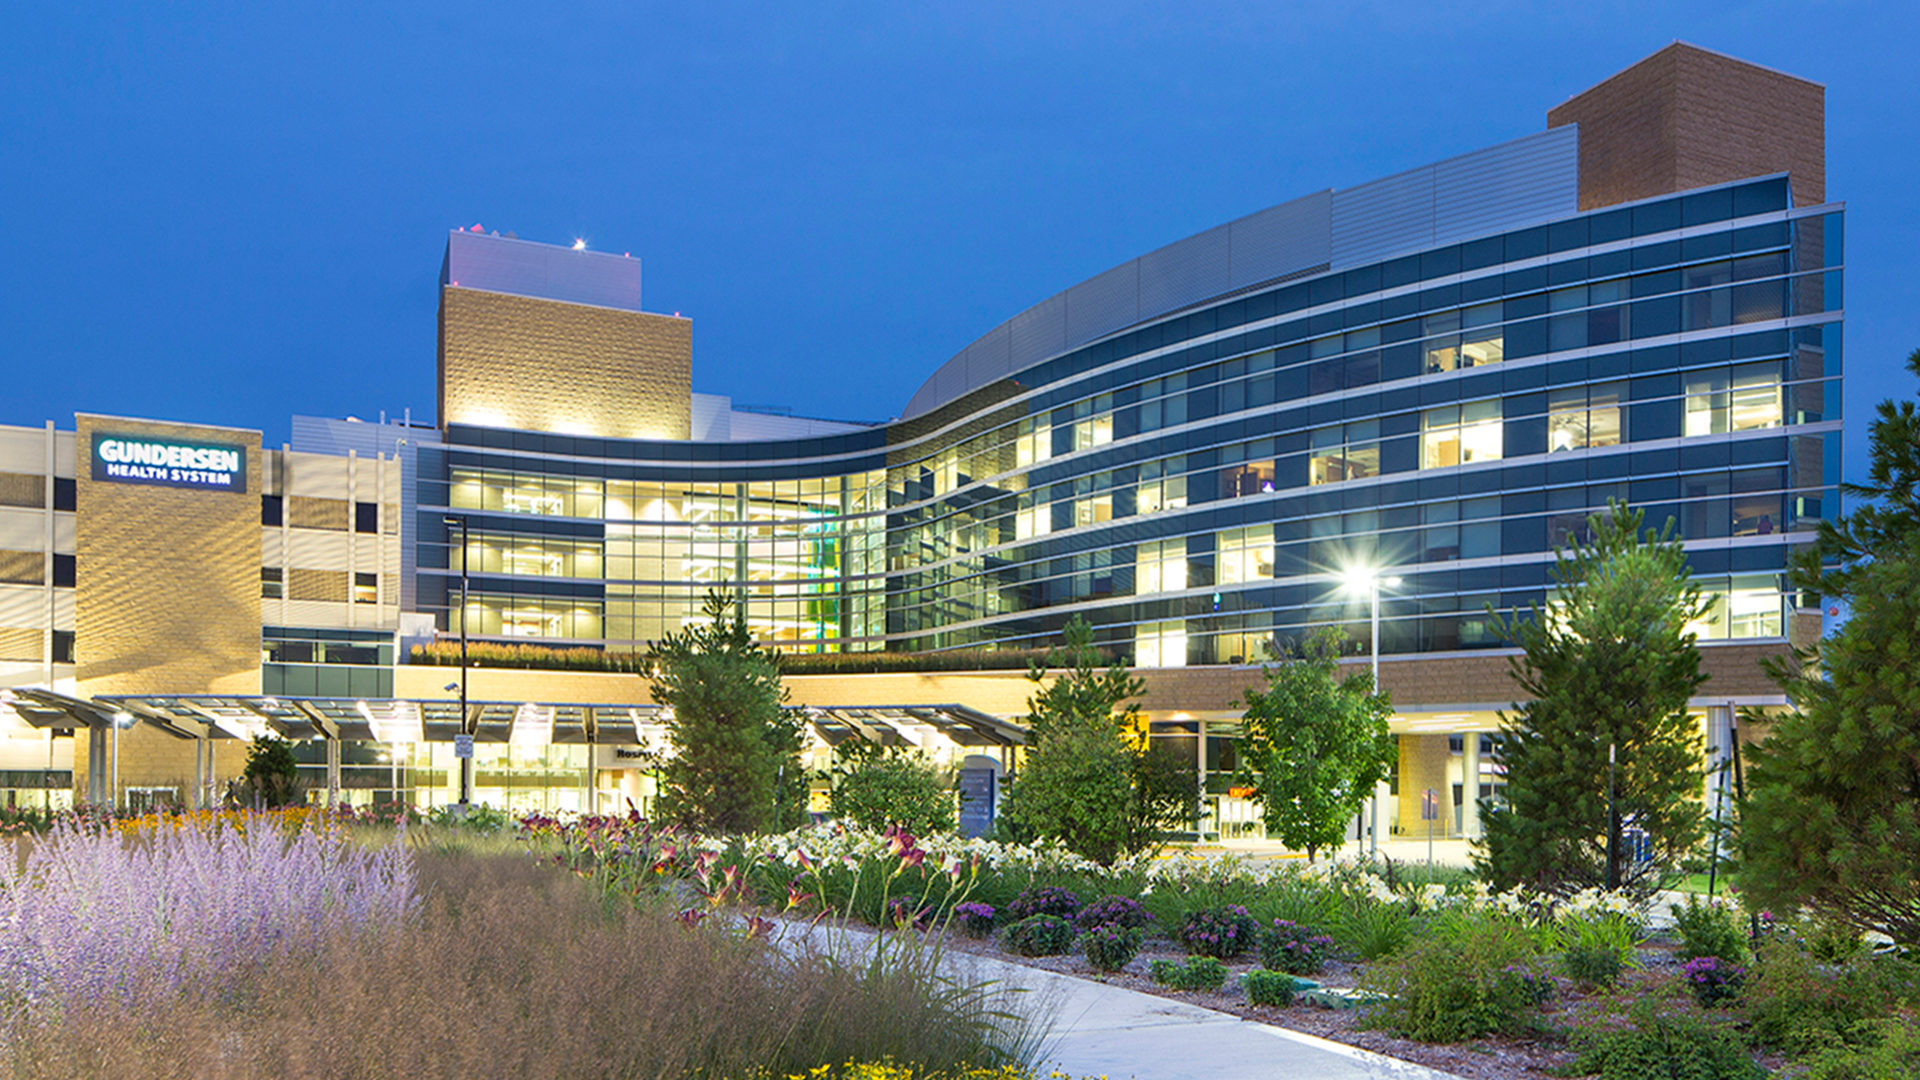 Gundersen Healthcare System Hospital Evening Exterior View